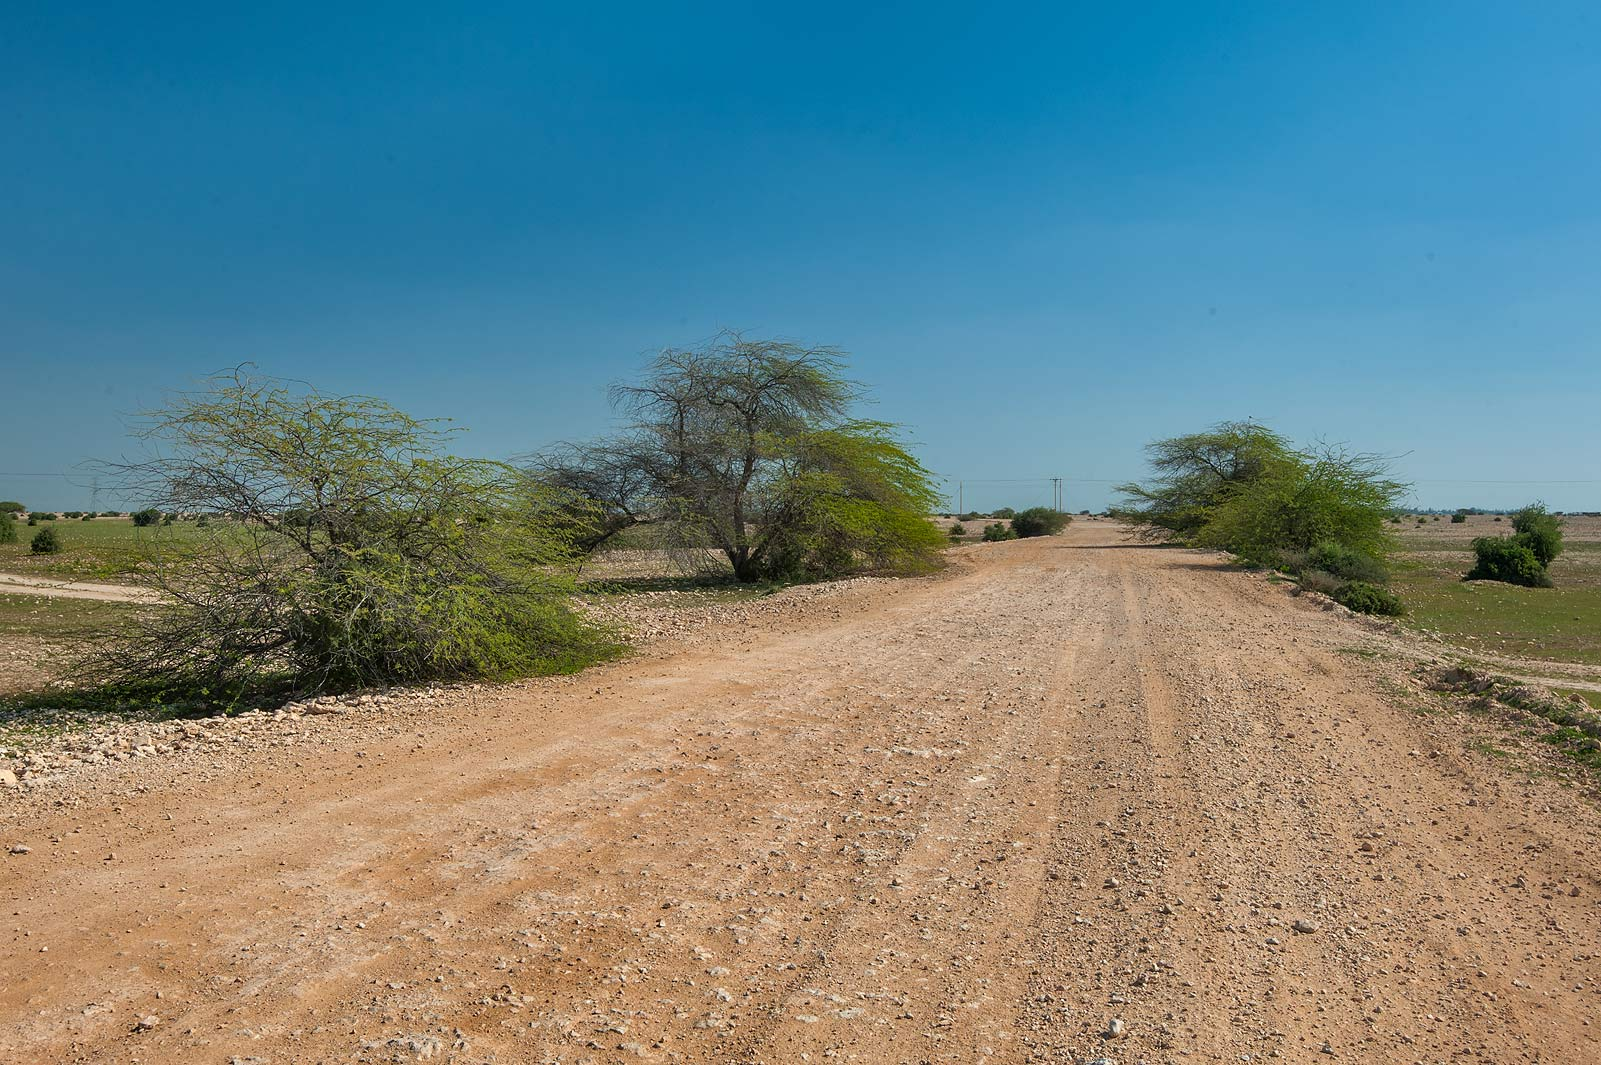 Rural road near Al Mustafawi Farm House in Al Mardiya-Wasit area. Northern Qatar